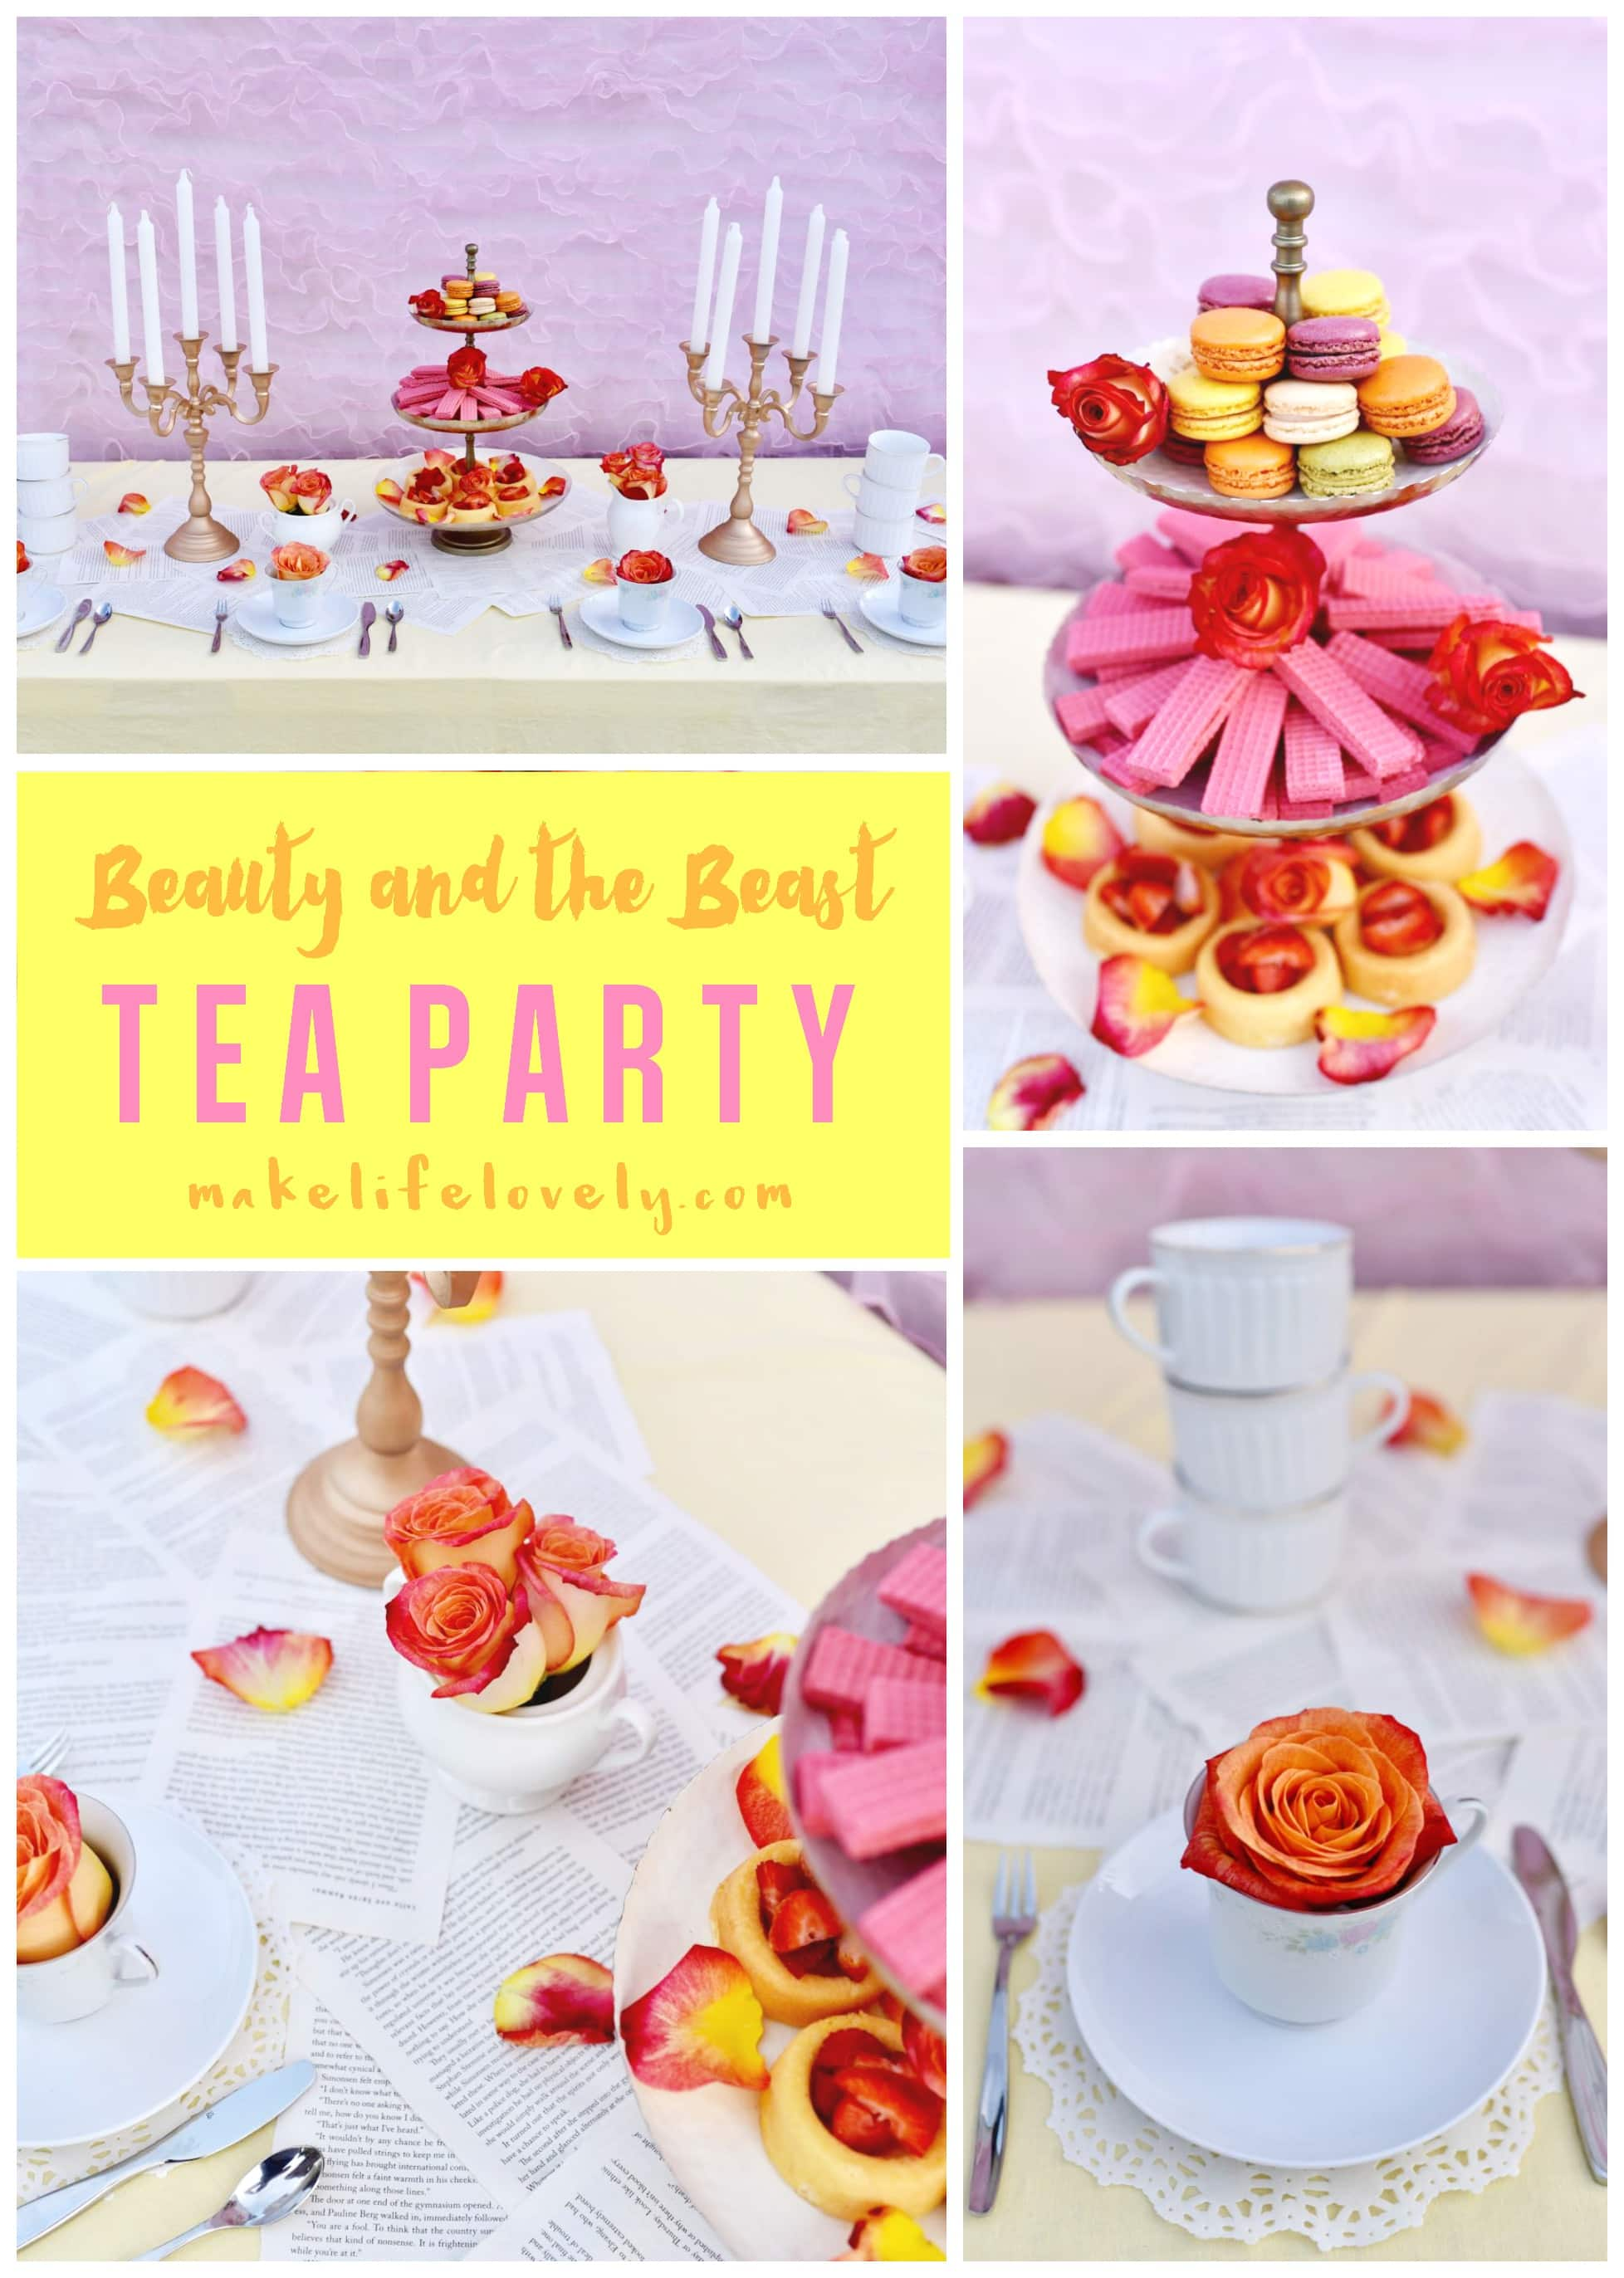 Belle Beauty and the Beast Party - Make Life Lovely